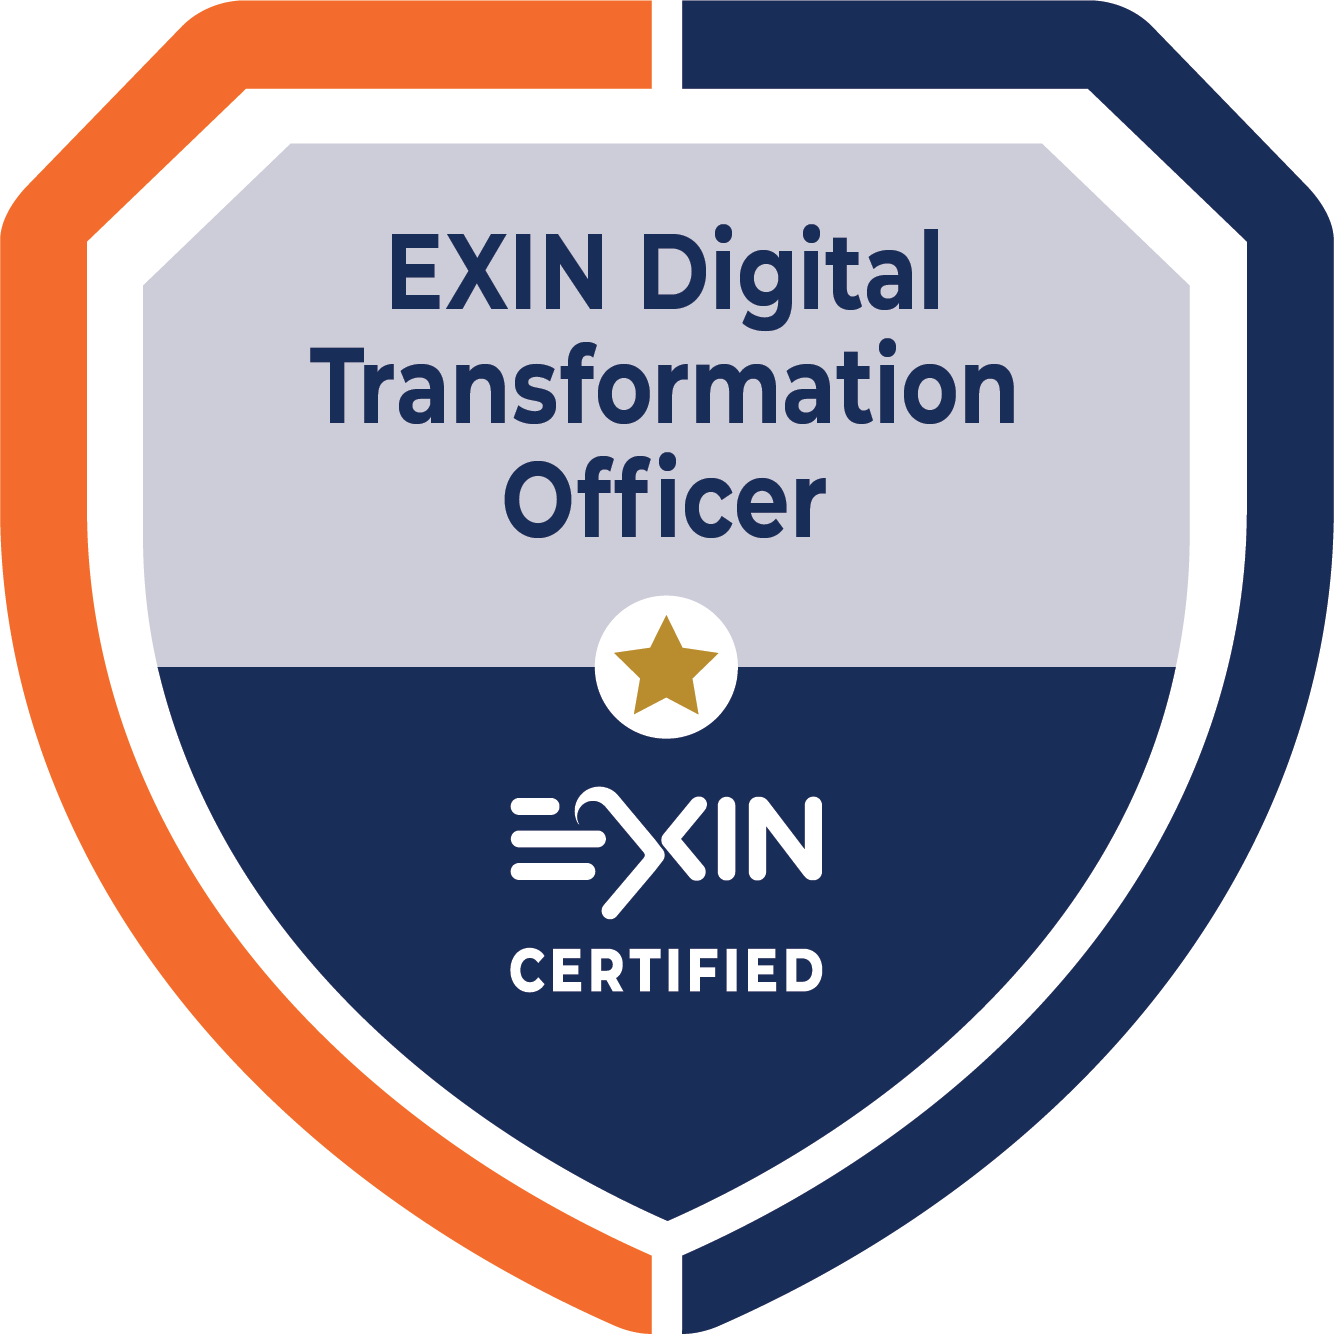 EXIN Certified Digital Transformation Officer